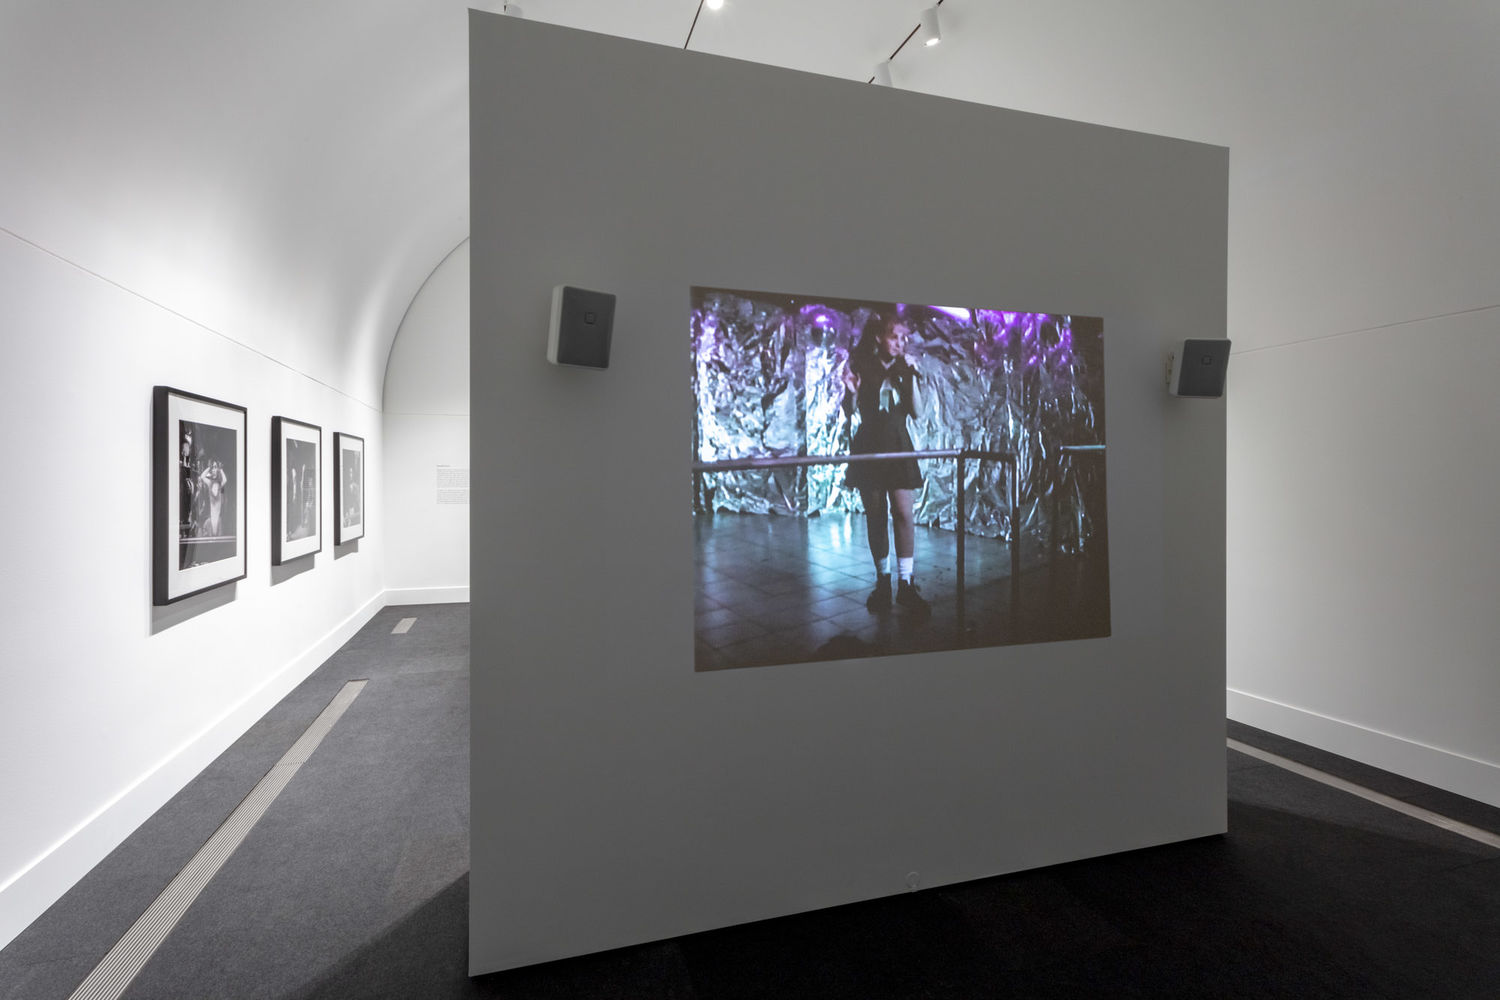 A white gallery with a free-standing wall standing in the foreground. A projection of a color image is visible on the free-standing wall. Three black and white photographs are visible on the gallery walls to the left in the background.